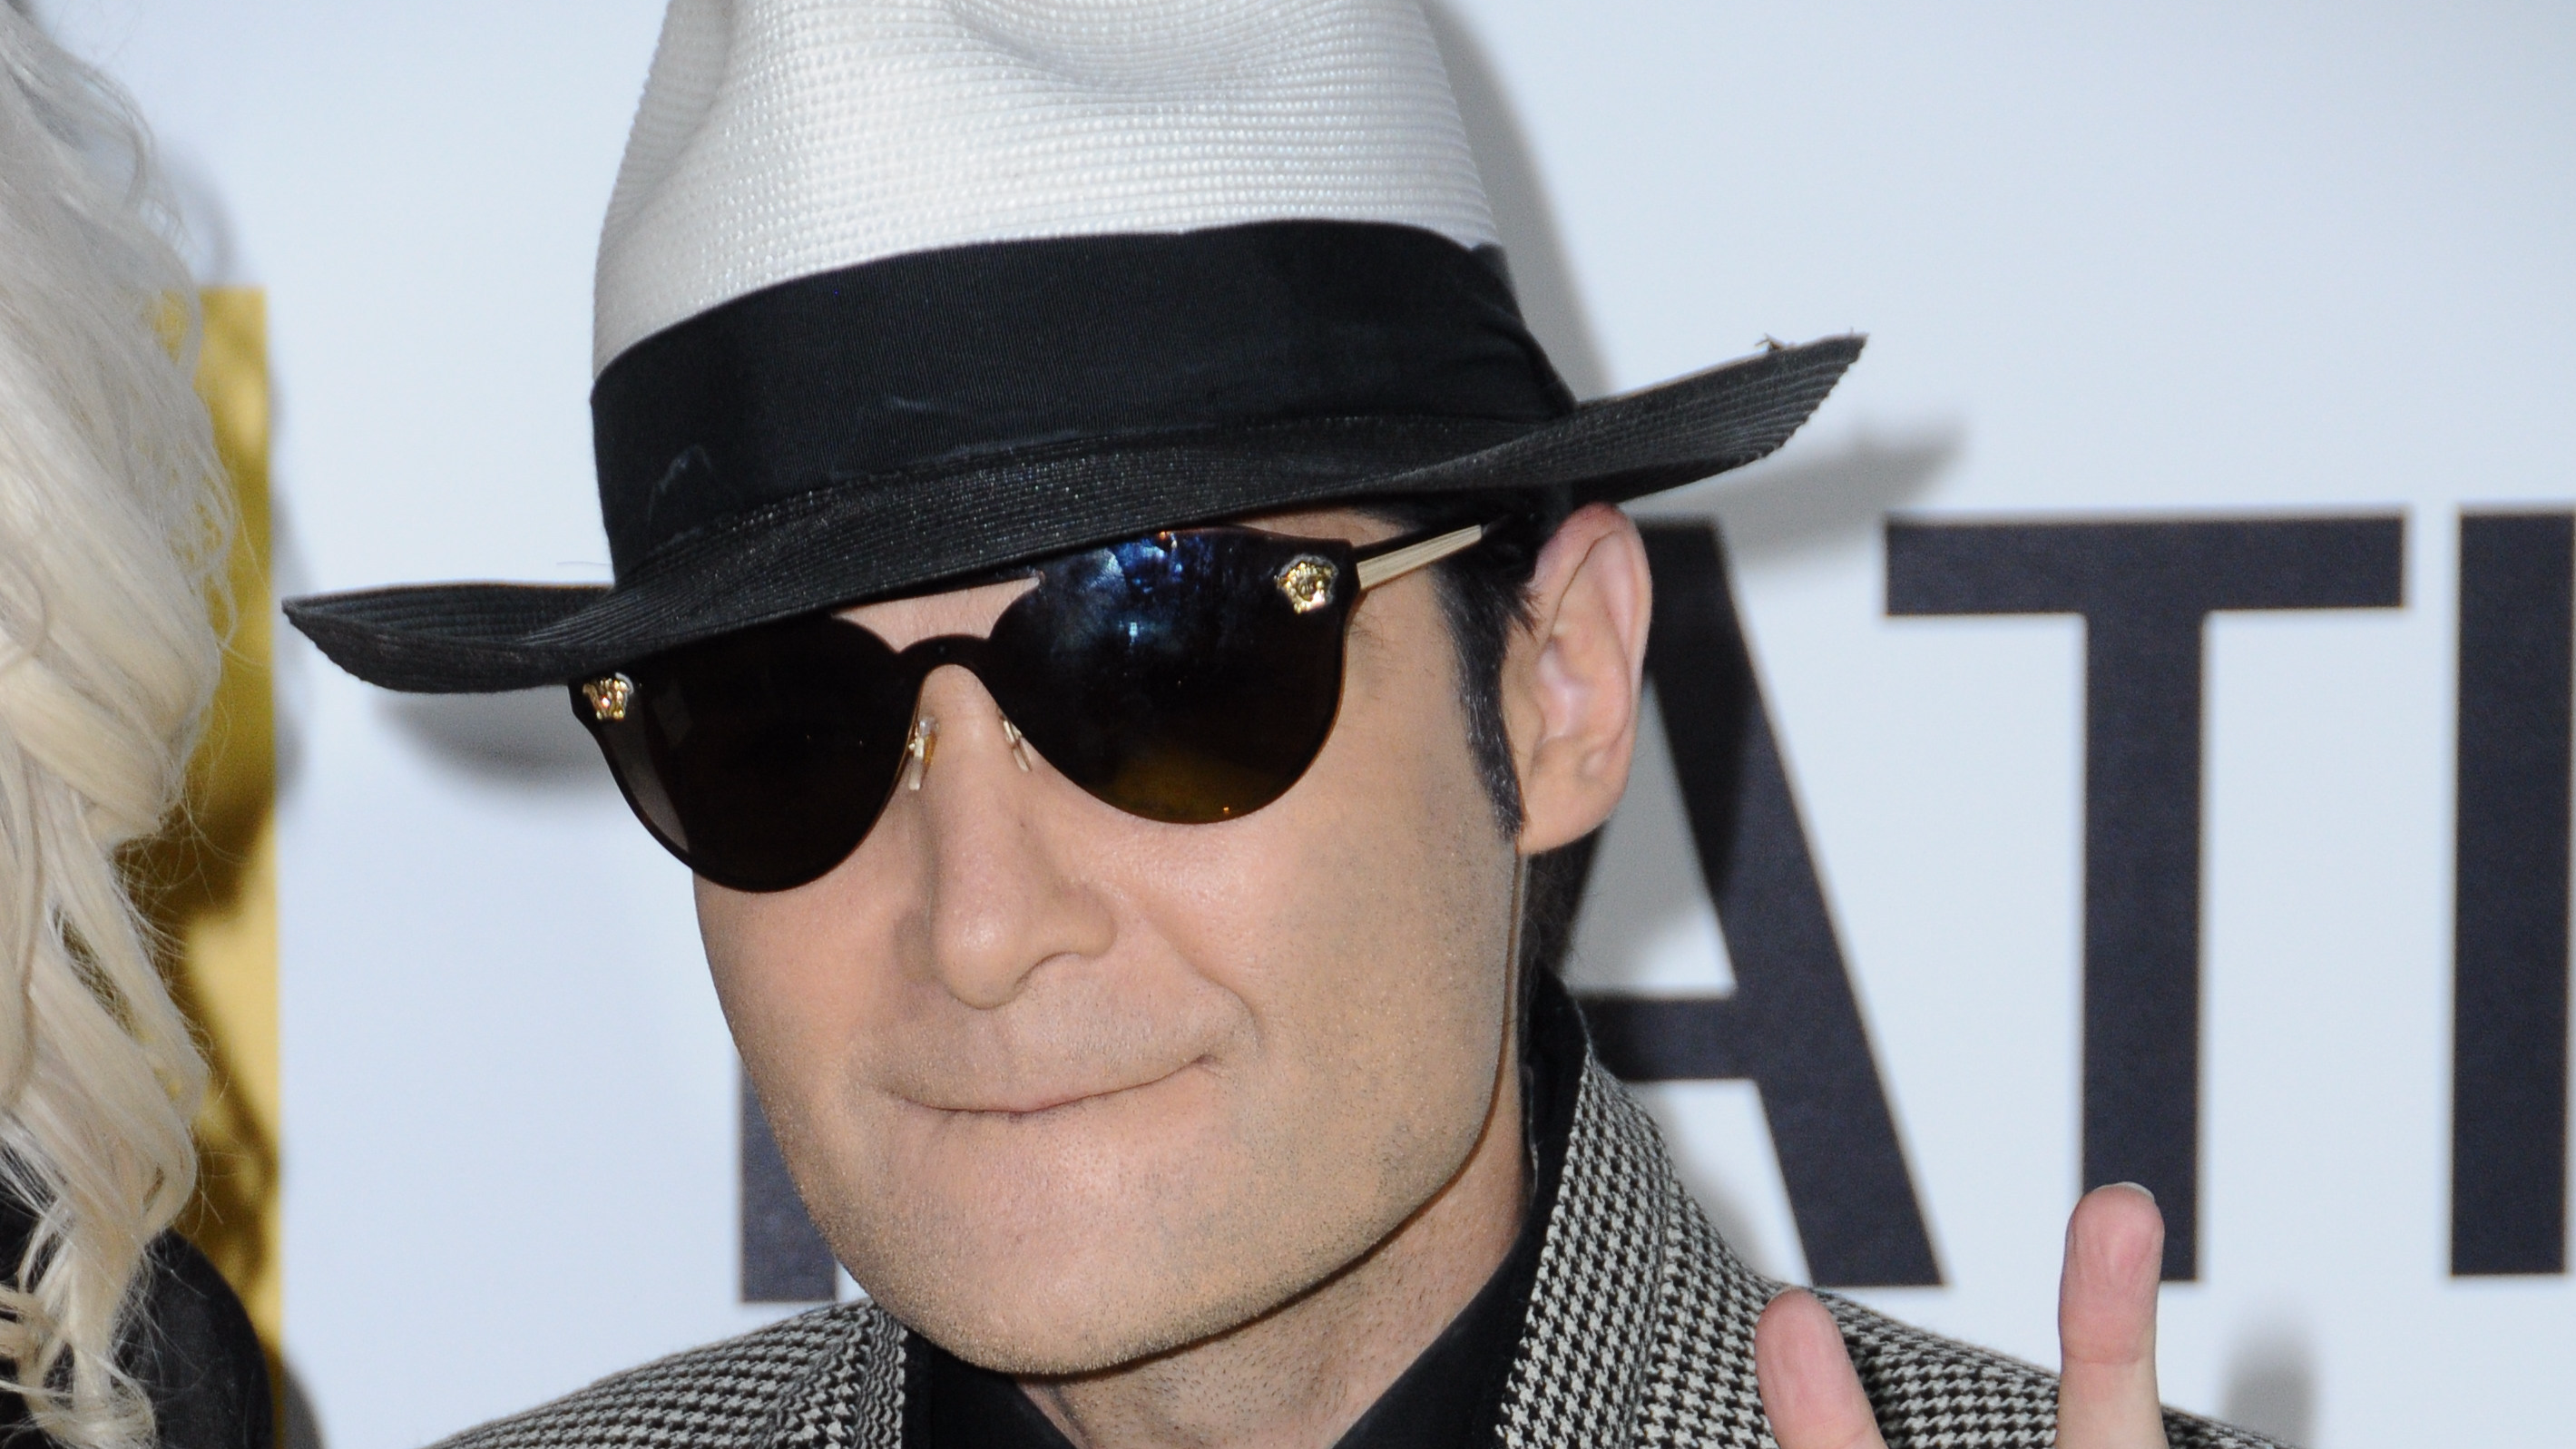 Corey Feldman 'Under Investigation For Sexual Battery'